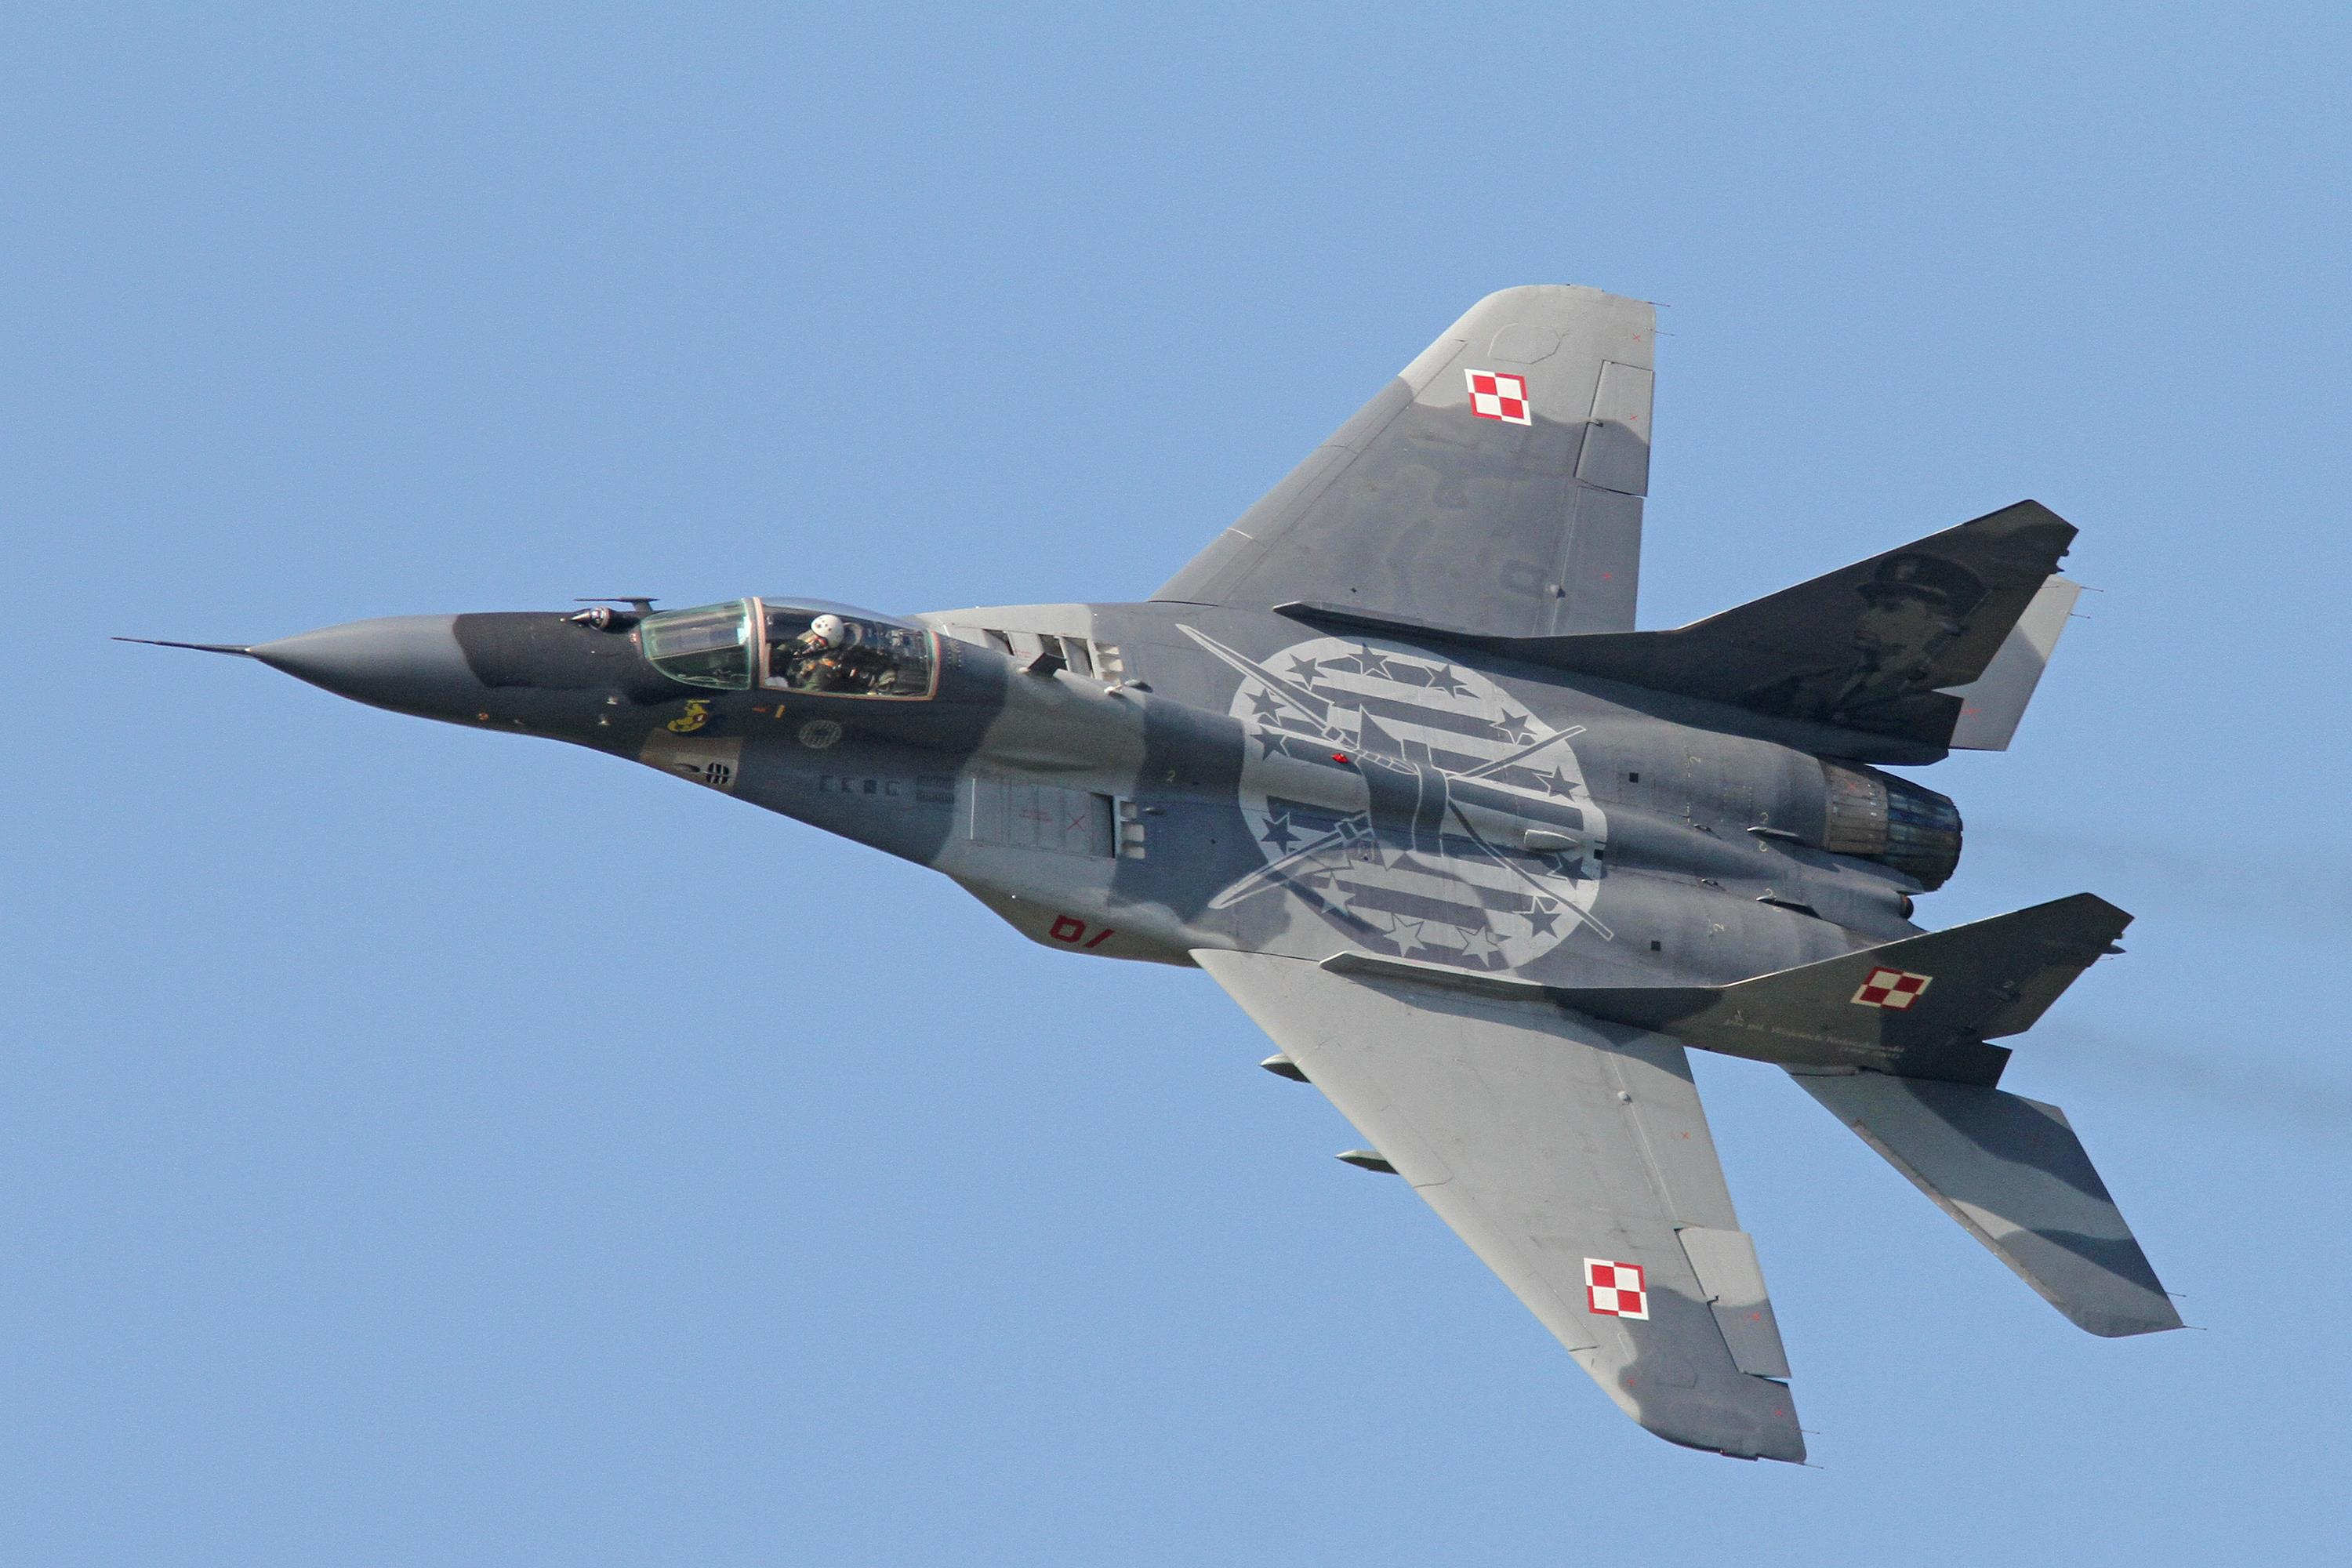 Belgian Air Force Days 2014 – Kleine Brogel (Part 2)